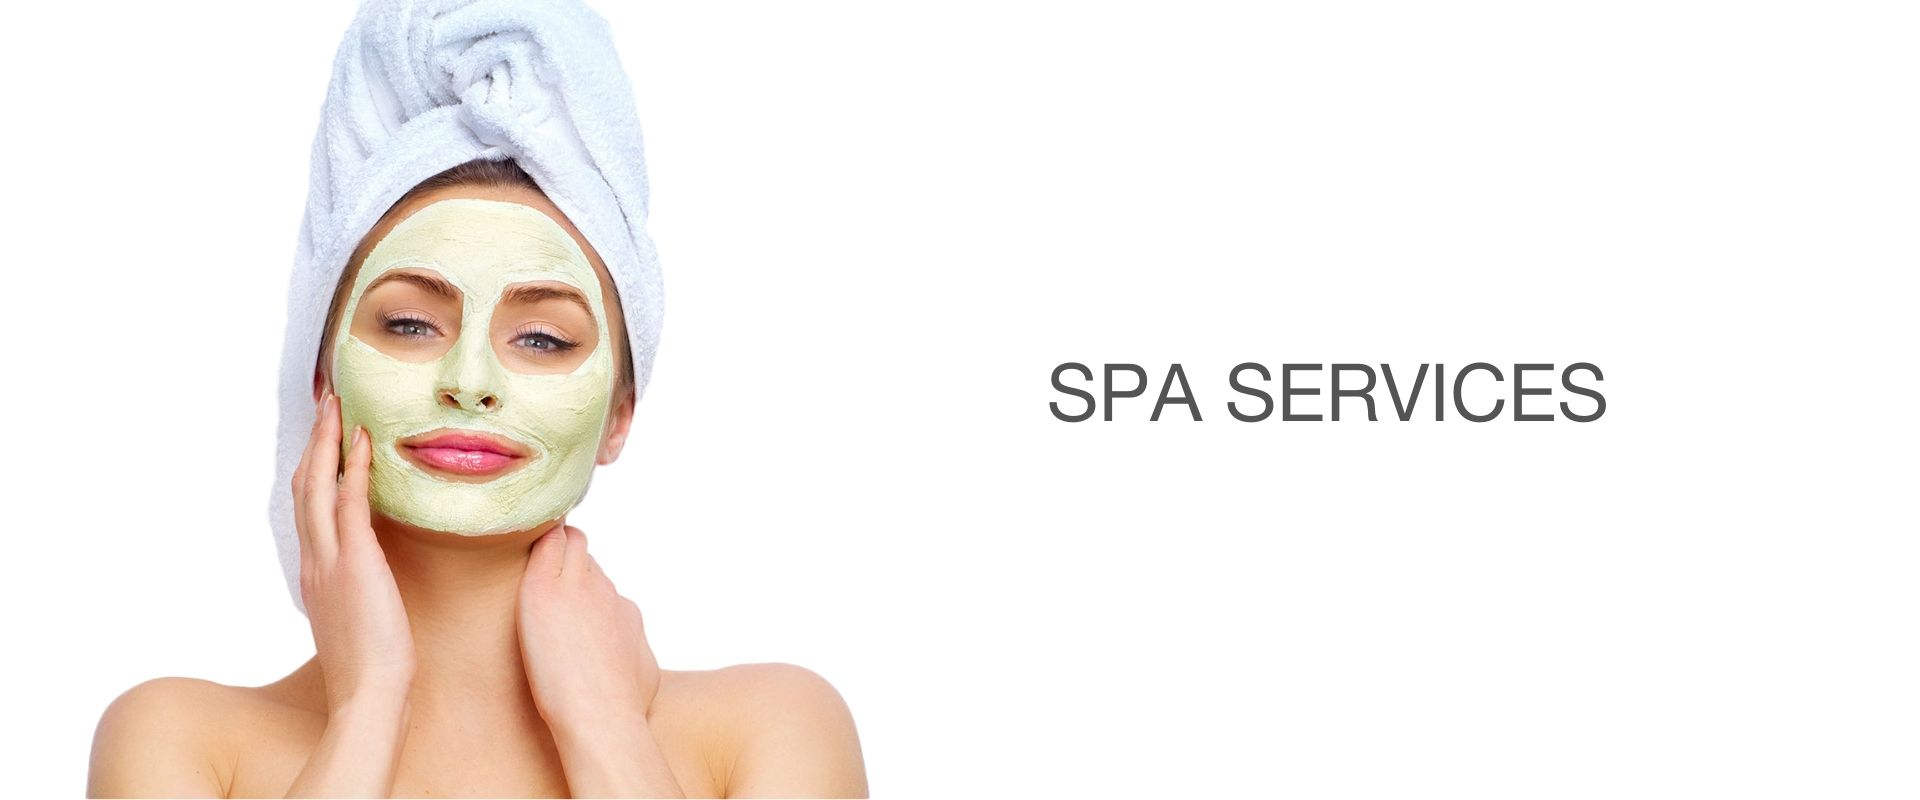 spa services